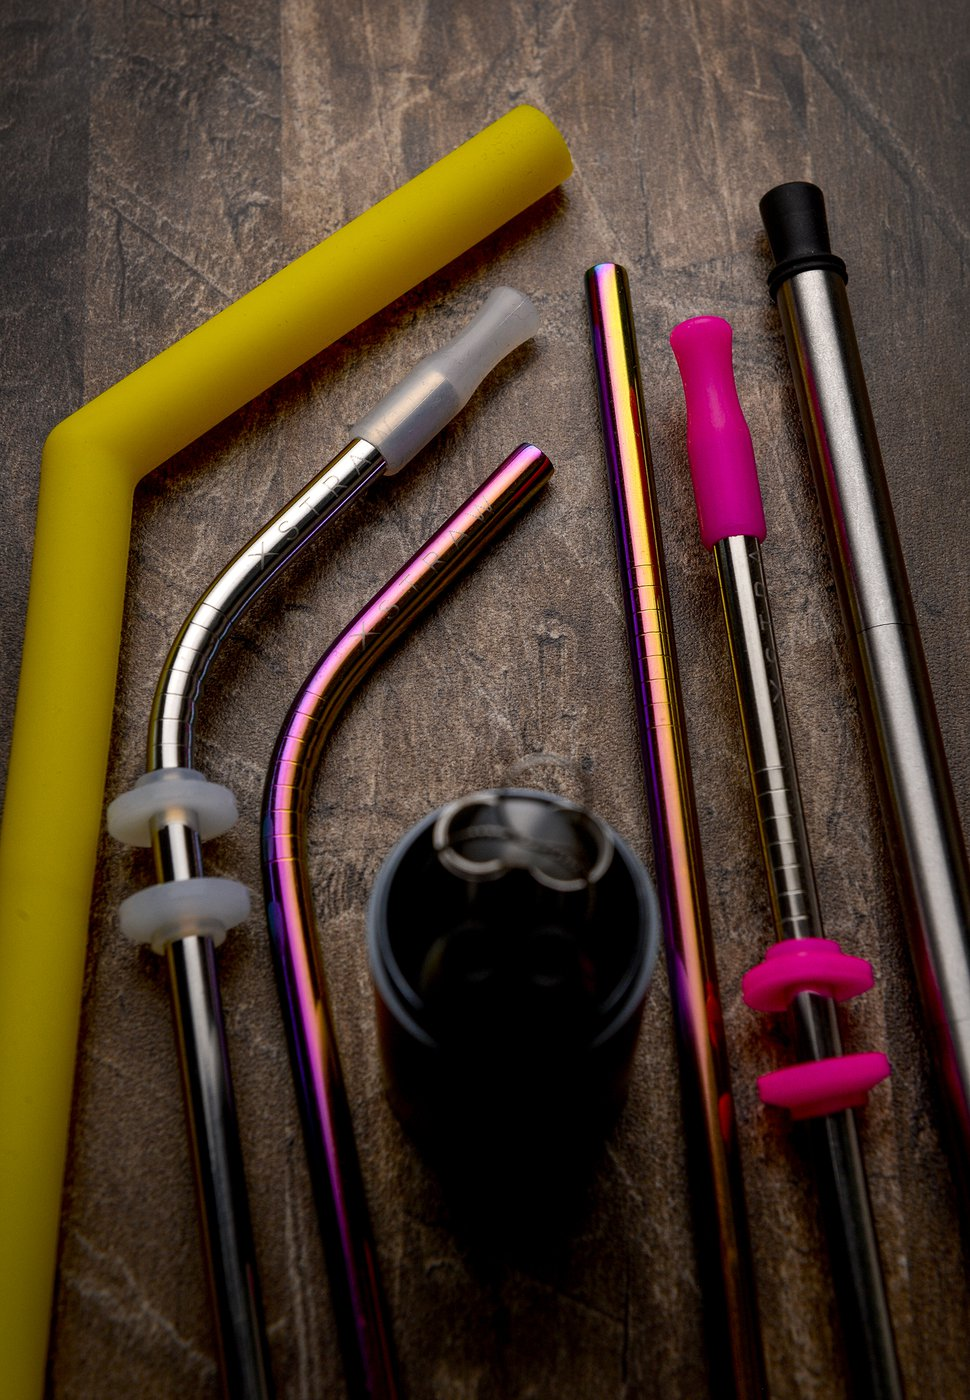 Leah Hogsten | The Salt Lake Tribune Left to right, X-Straw's soft silicone straw that is offered in a variety of colors, a silicone soft-tipped bent stainless steel straw, a bent stainless steel straw, a straight stainless steel straw and silicone soft-tipped straight stainless steel straw and a collapsible straw. Restaurants in Utah and around the country are ditching plastic straws to better the environment. Jason Brailow and Chad Beals, co-owners of L7 Labs in South Jordan, are selling silicone, stainless steel and collapsible straws through a new internet company, X-Straw.